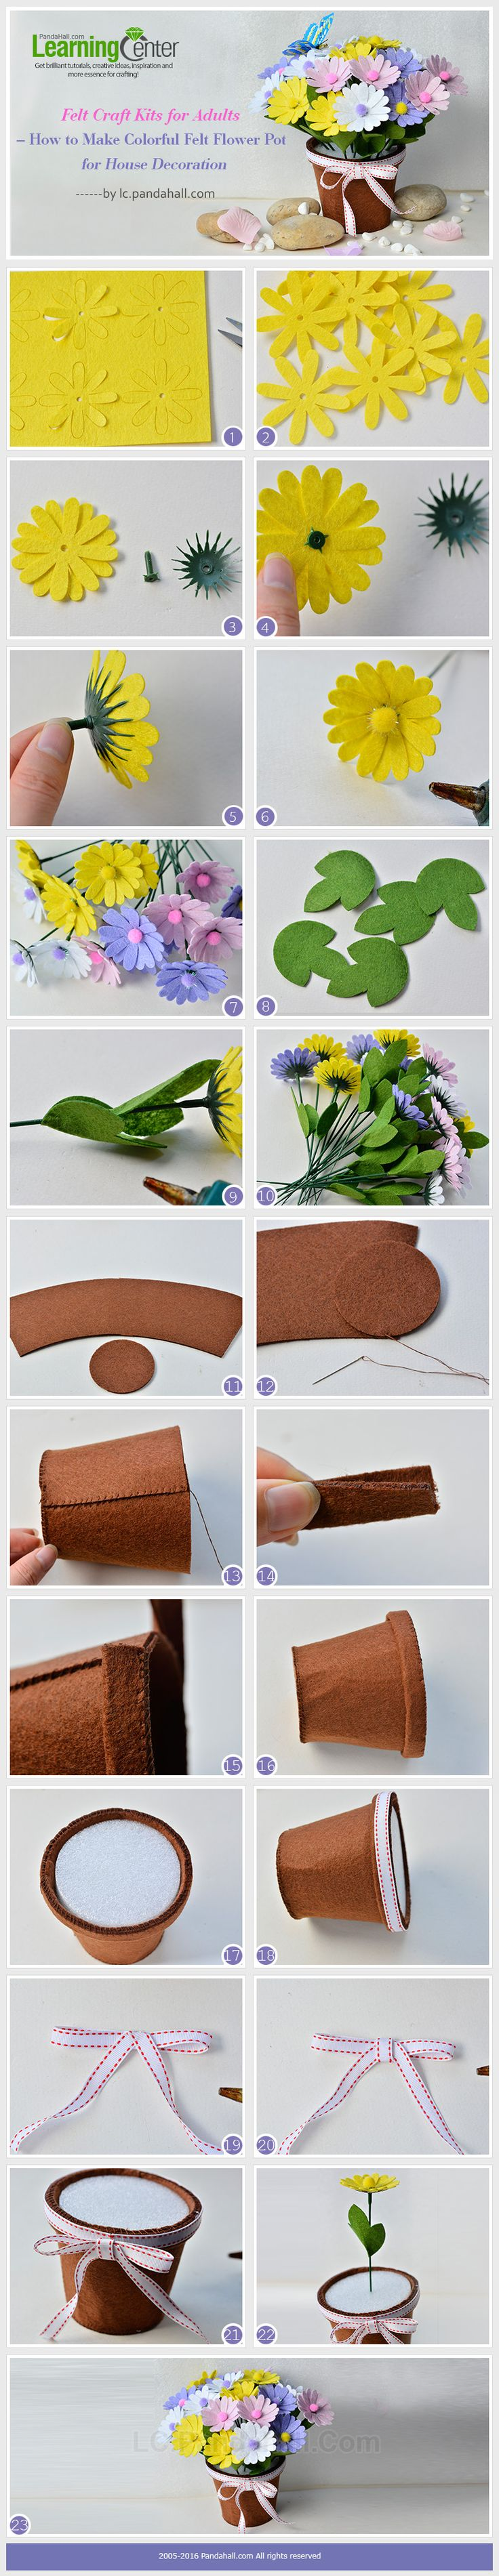 Felt Craft Kits for Adults – How to Make Colorful Felt Flower Pot for House Decoration from LC.Pandahall.com    #pandahall